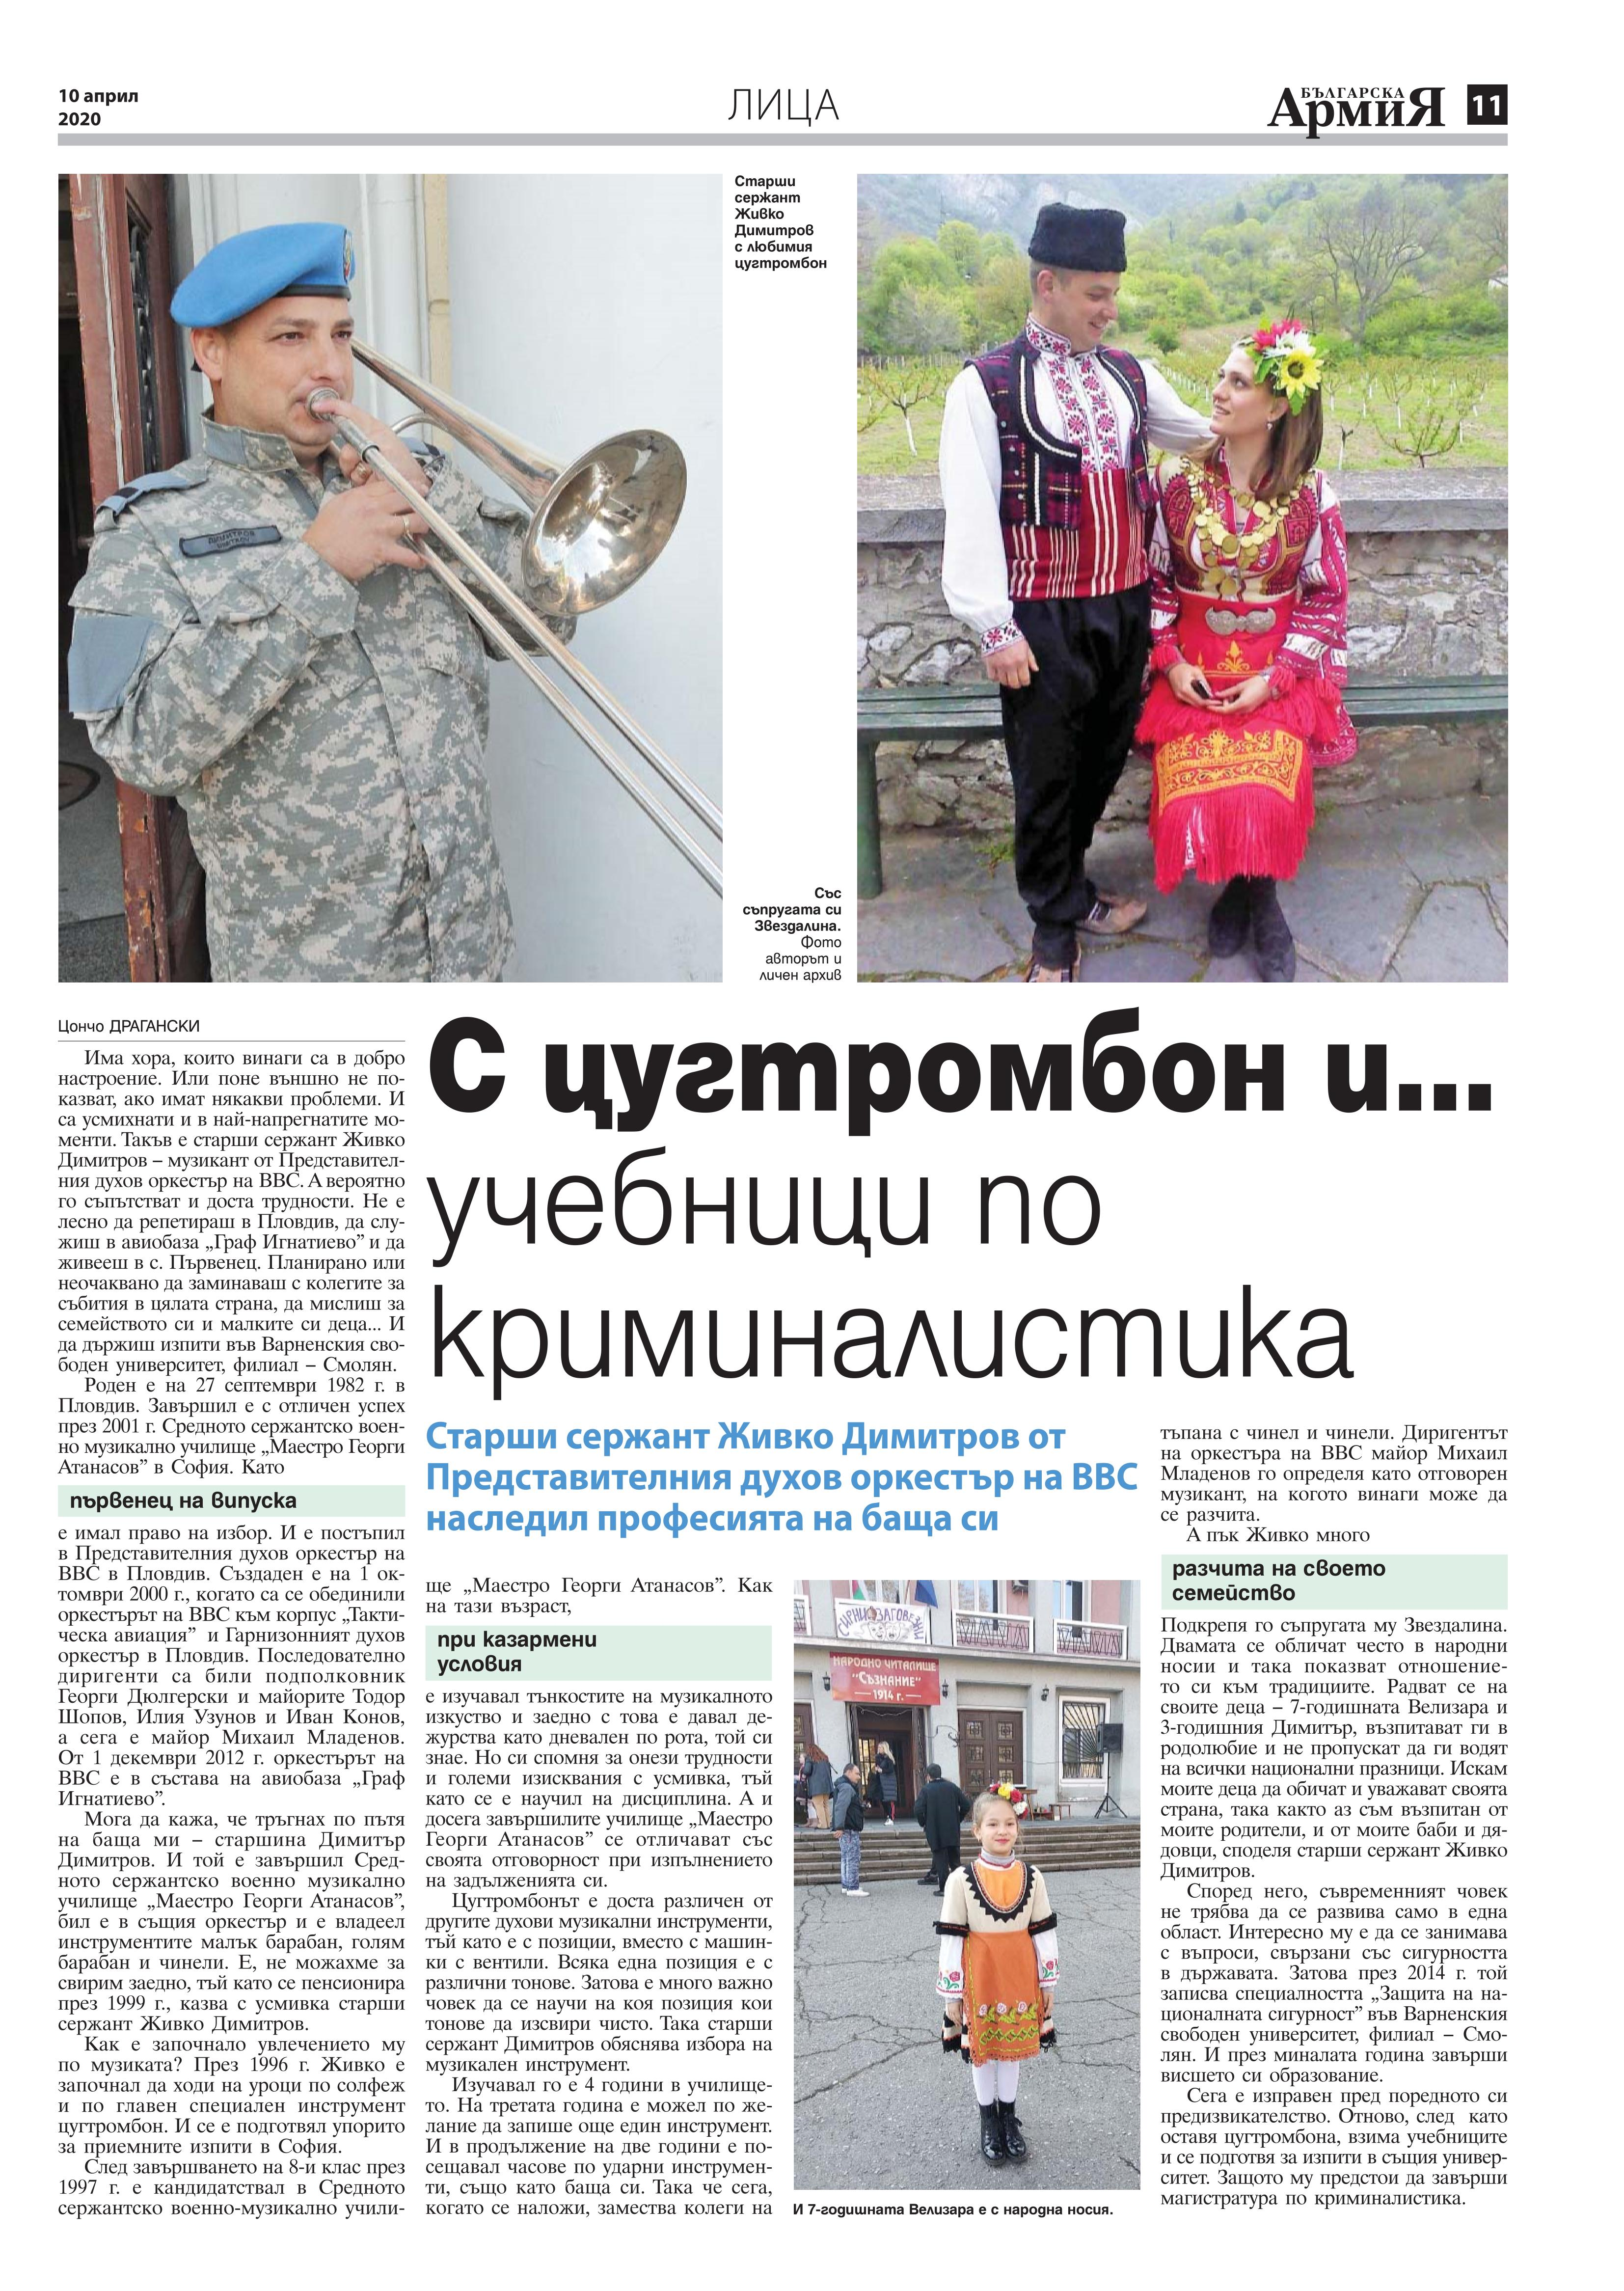 https://www.armymedia.bg/wp-content/uploads/2015/06/11.page1_-133.jpg